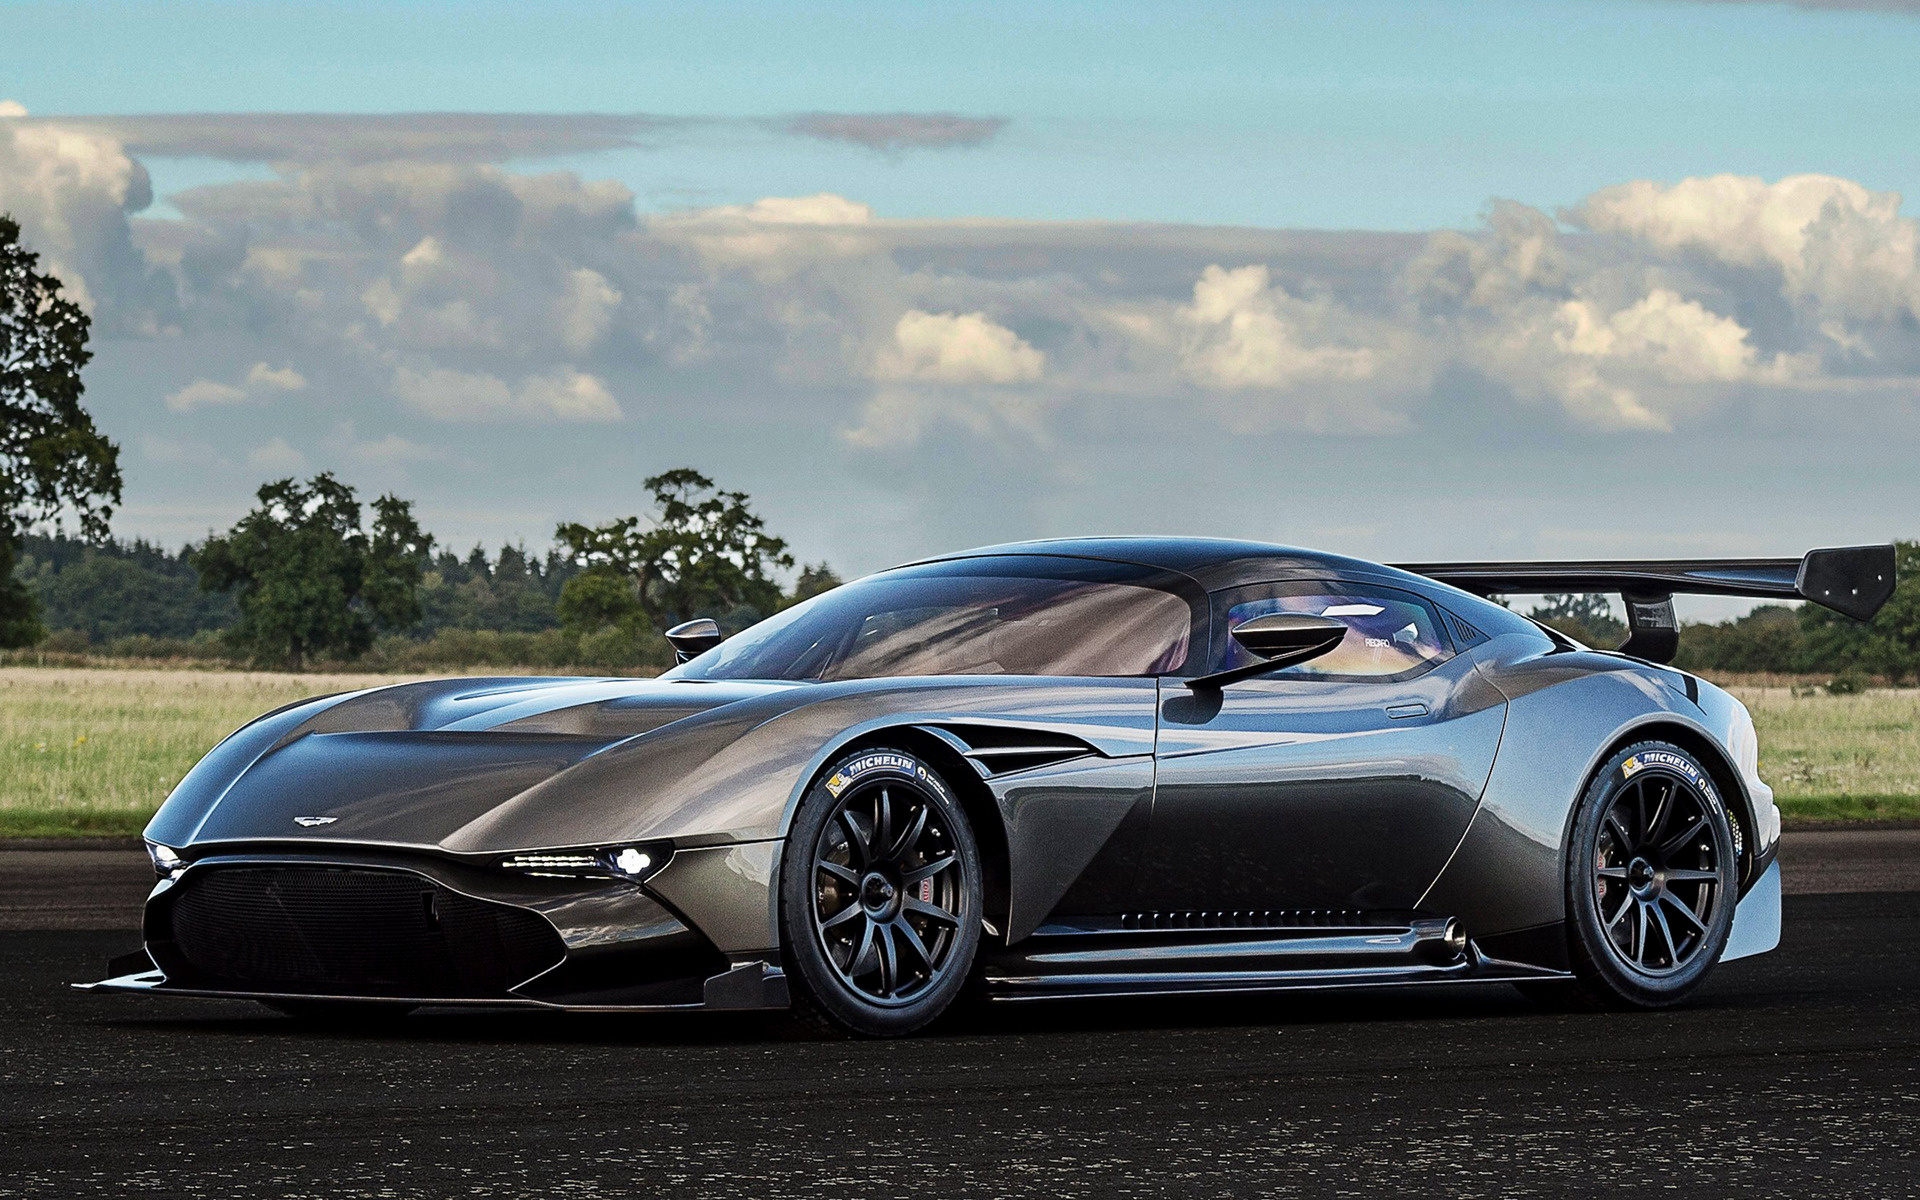 Hd Car Wallpapers Subaru 2015 Aston Martin Vulcan Wallpapers And Hd Images Car